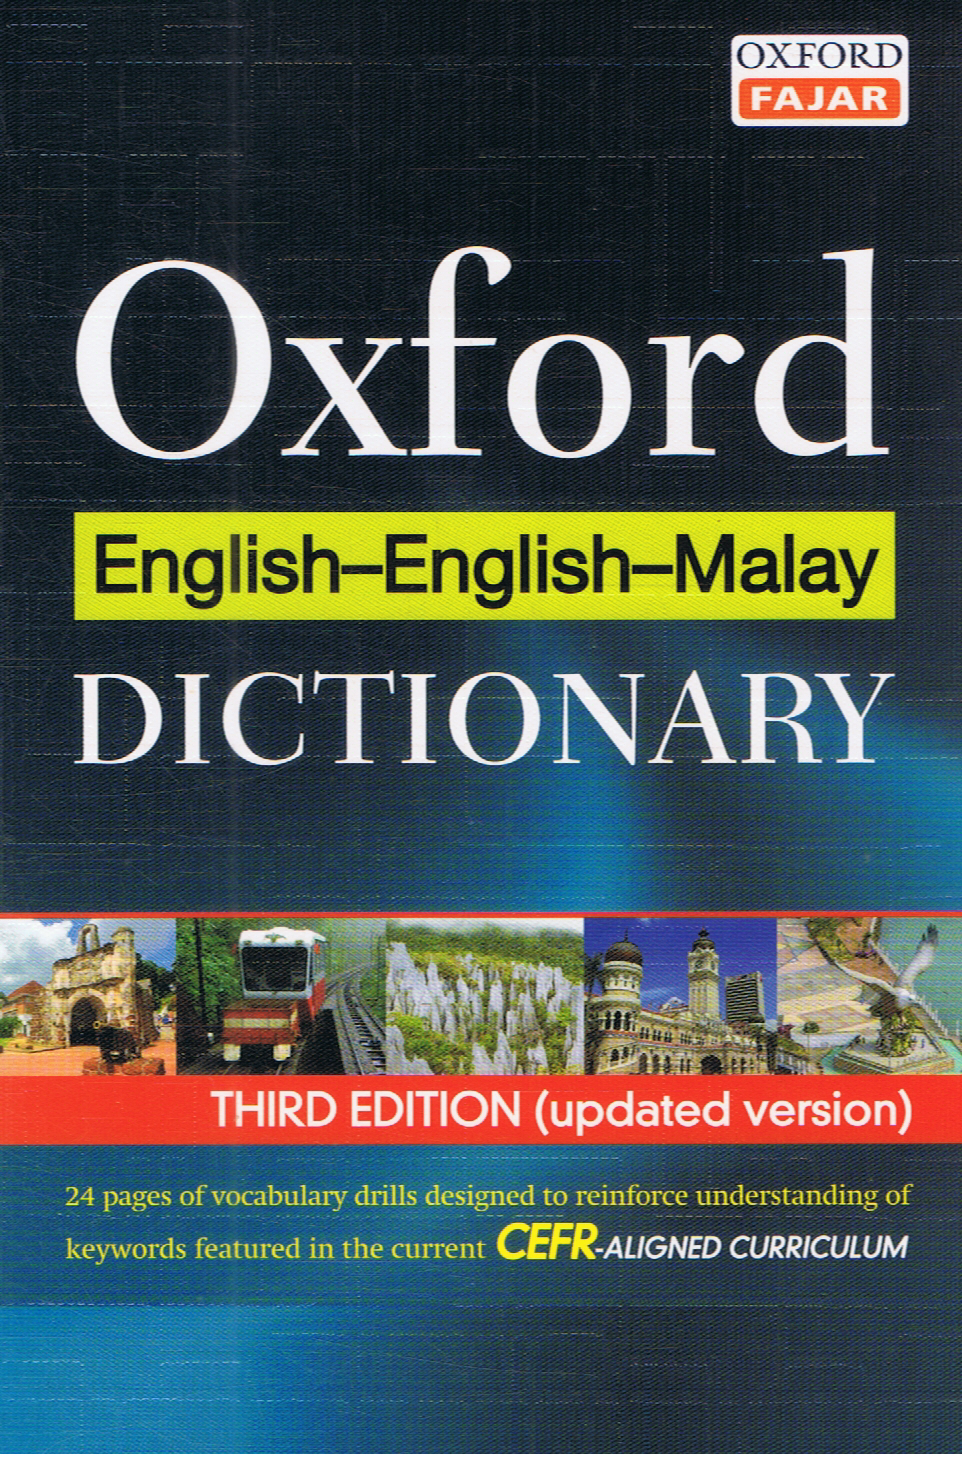 Oxford English-English-Malay Dictionary Third Edition